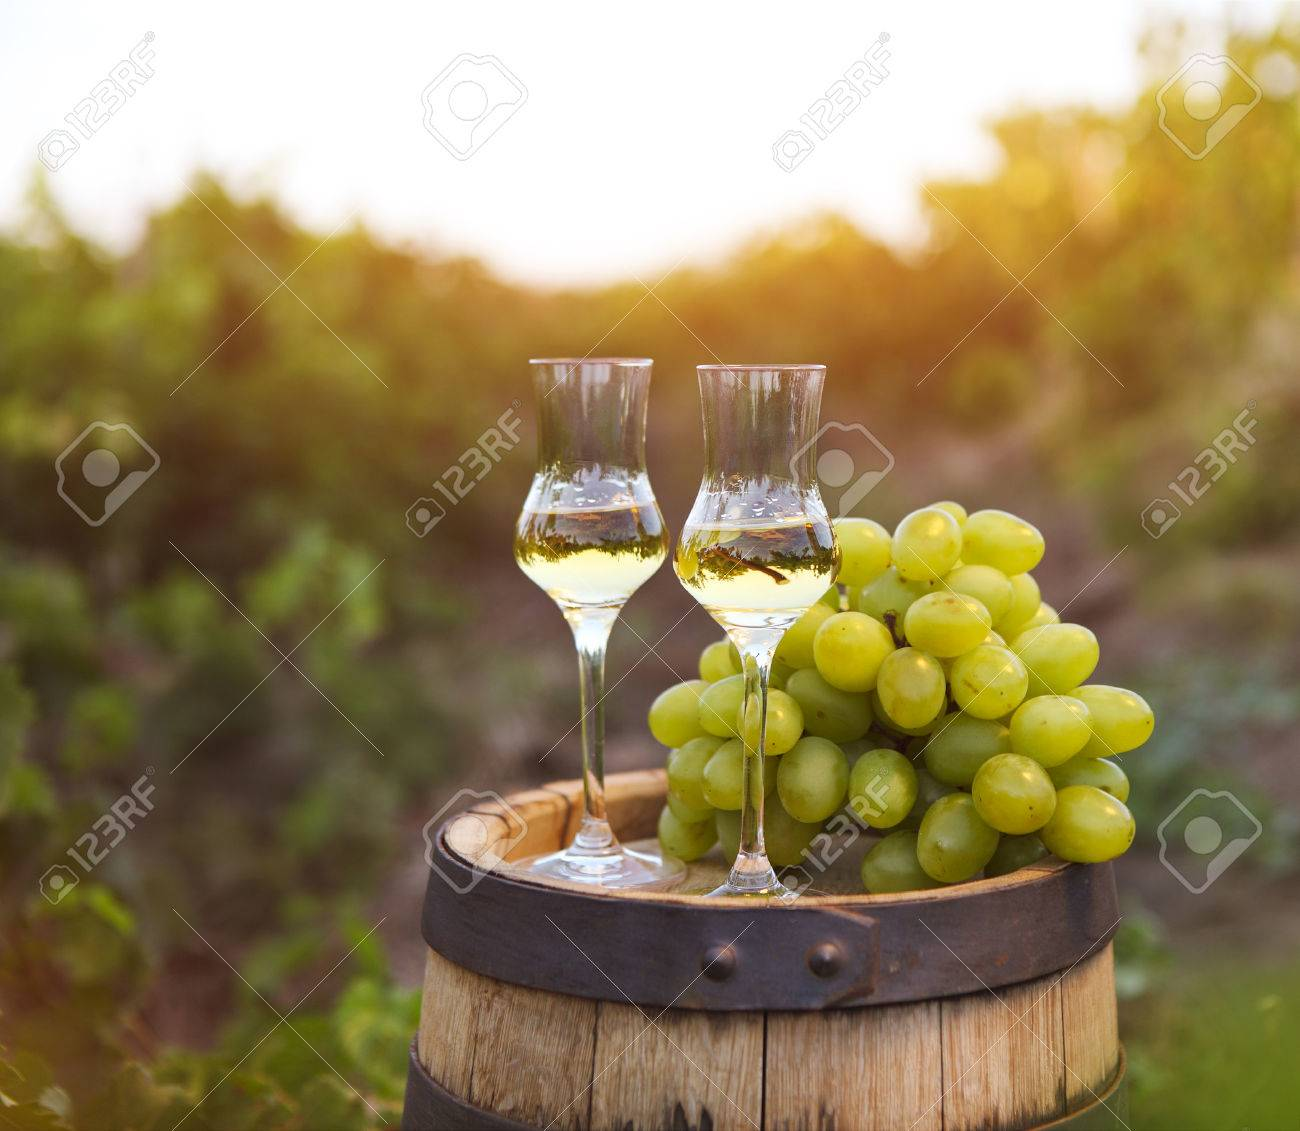 Two glasses of liquor or grappa with bunch of grapes against green background of the vineyard - 51347276